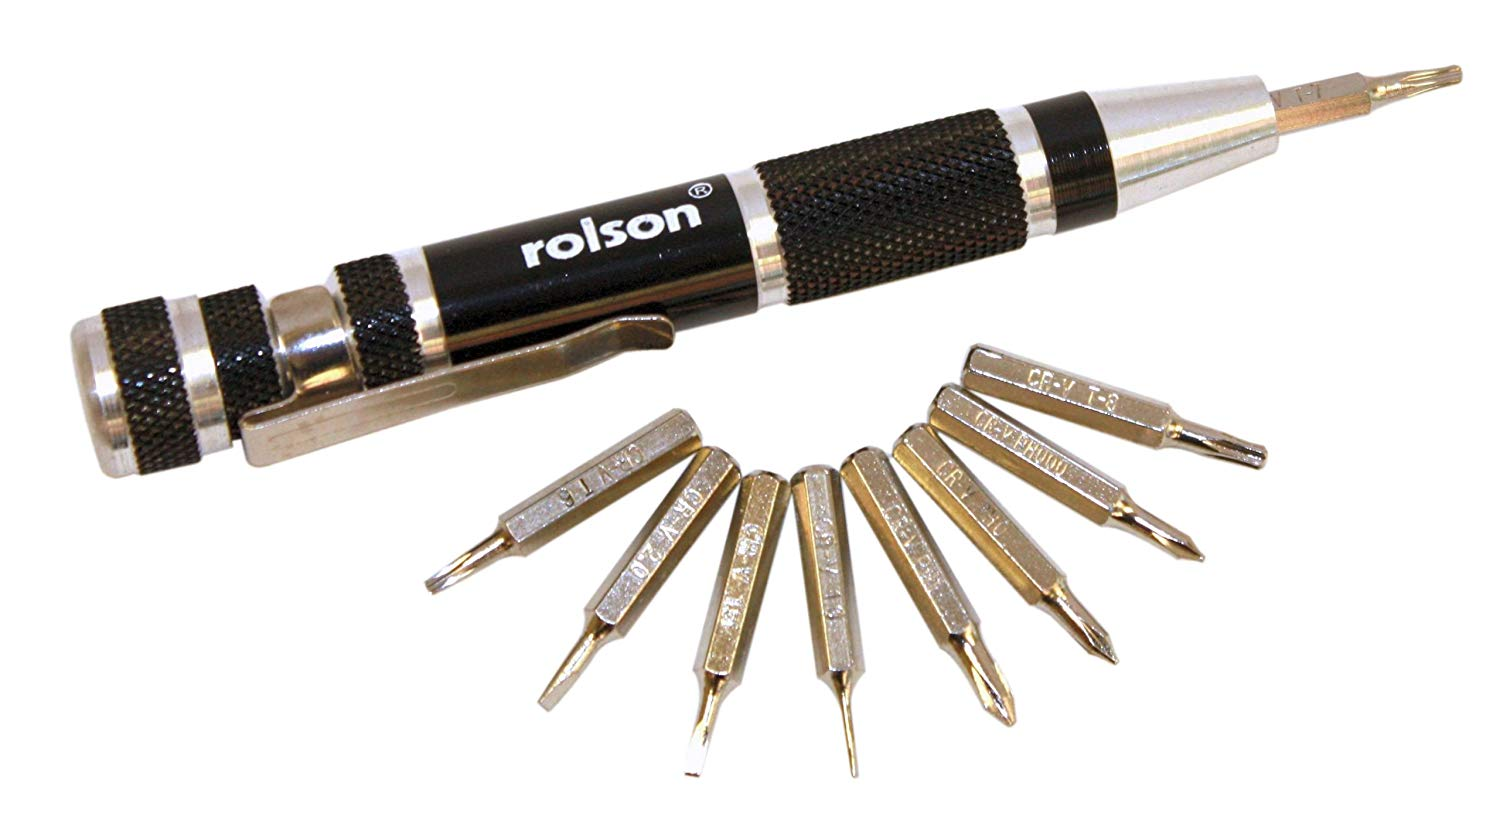 Rolson 9-in-1 Precision Screwdriver Only £1.86